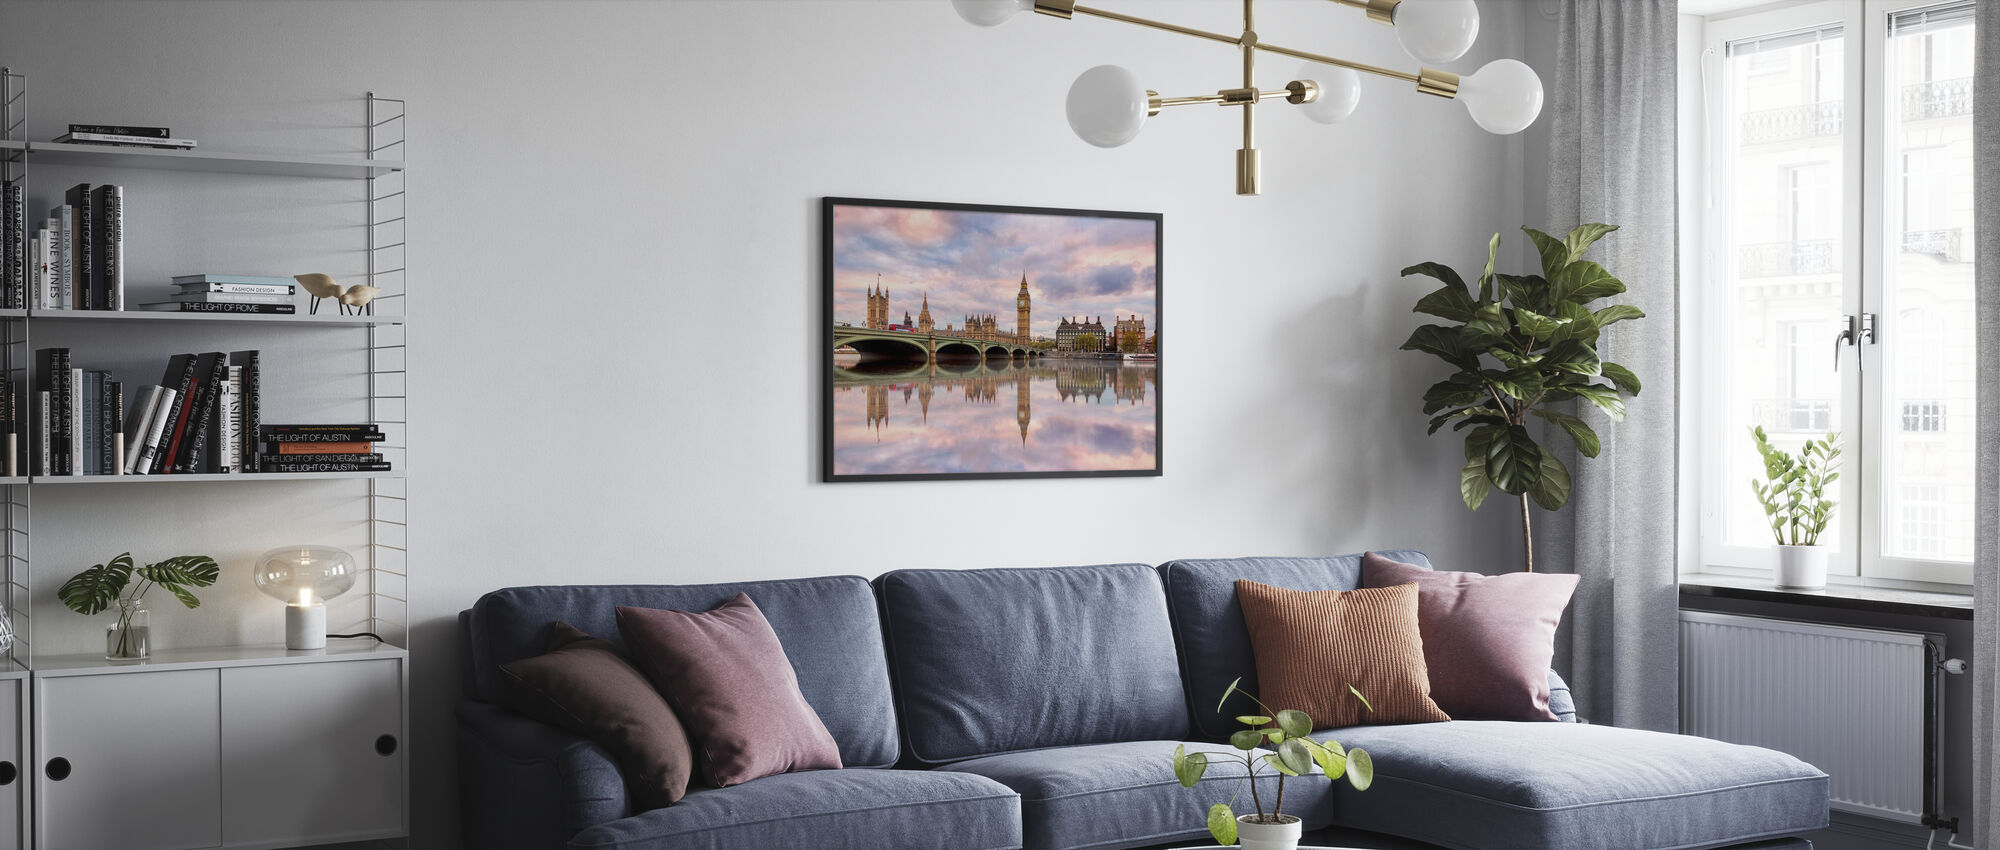 Sunset to Remember - Poster - Living Room